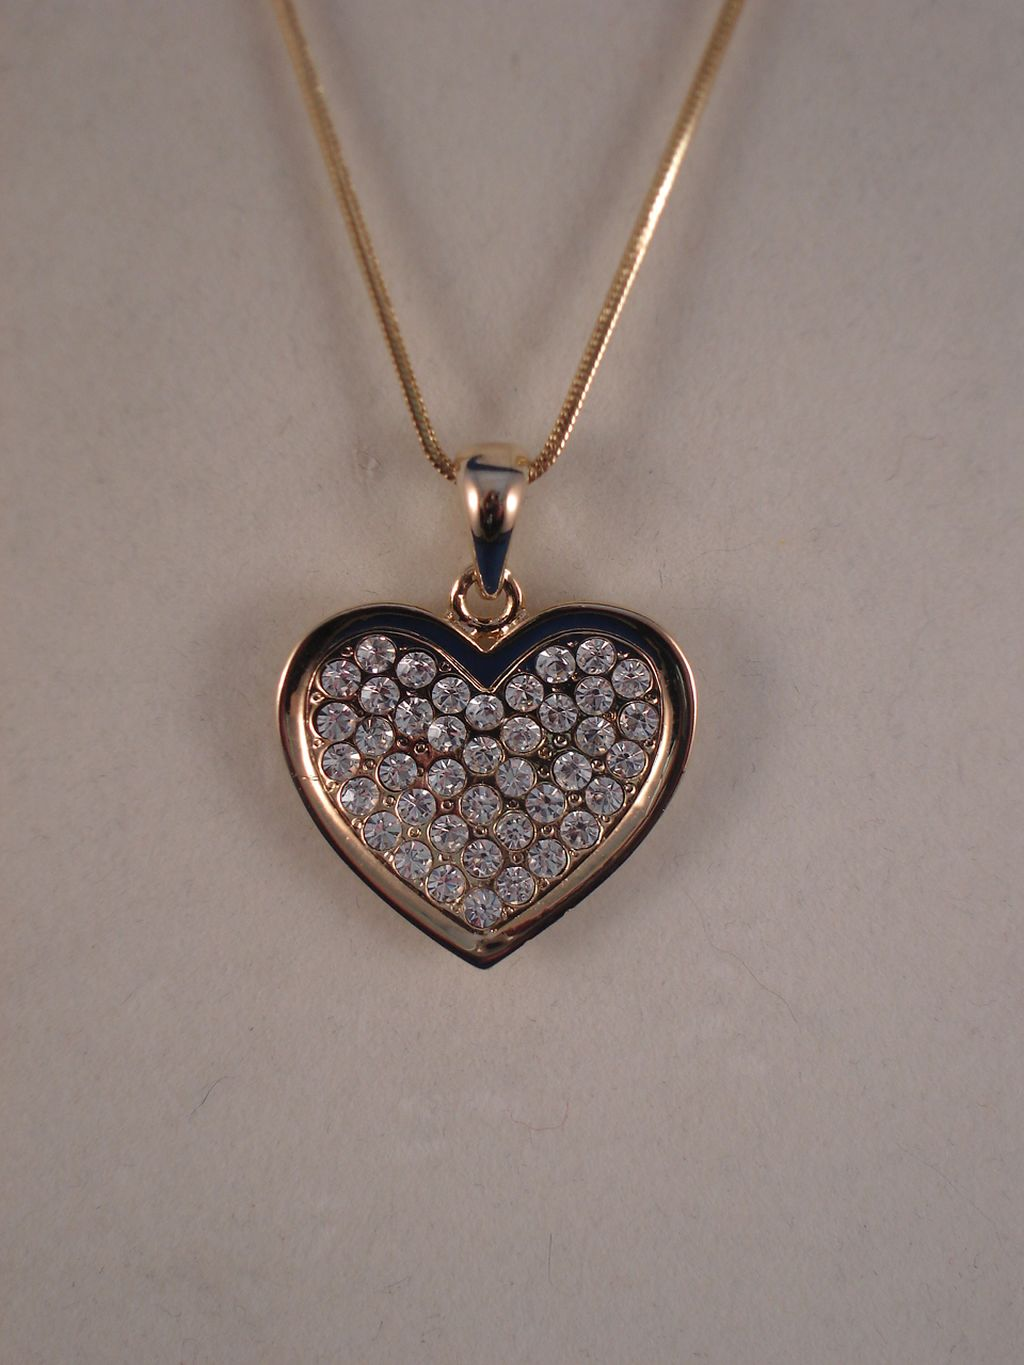 "Gold Color Necklace, 1"" Heart Pendant, Genuine White Austrian Crystal, Anti-allergic Jewelry"